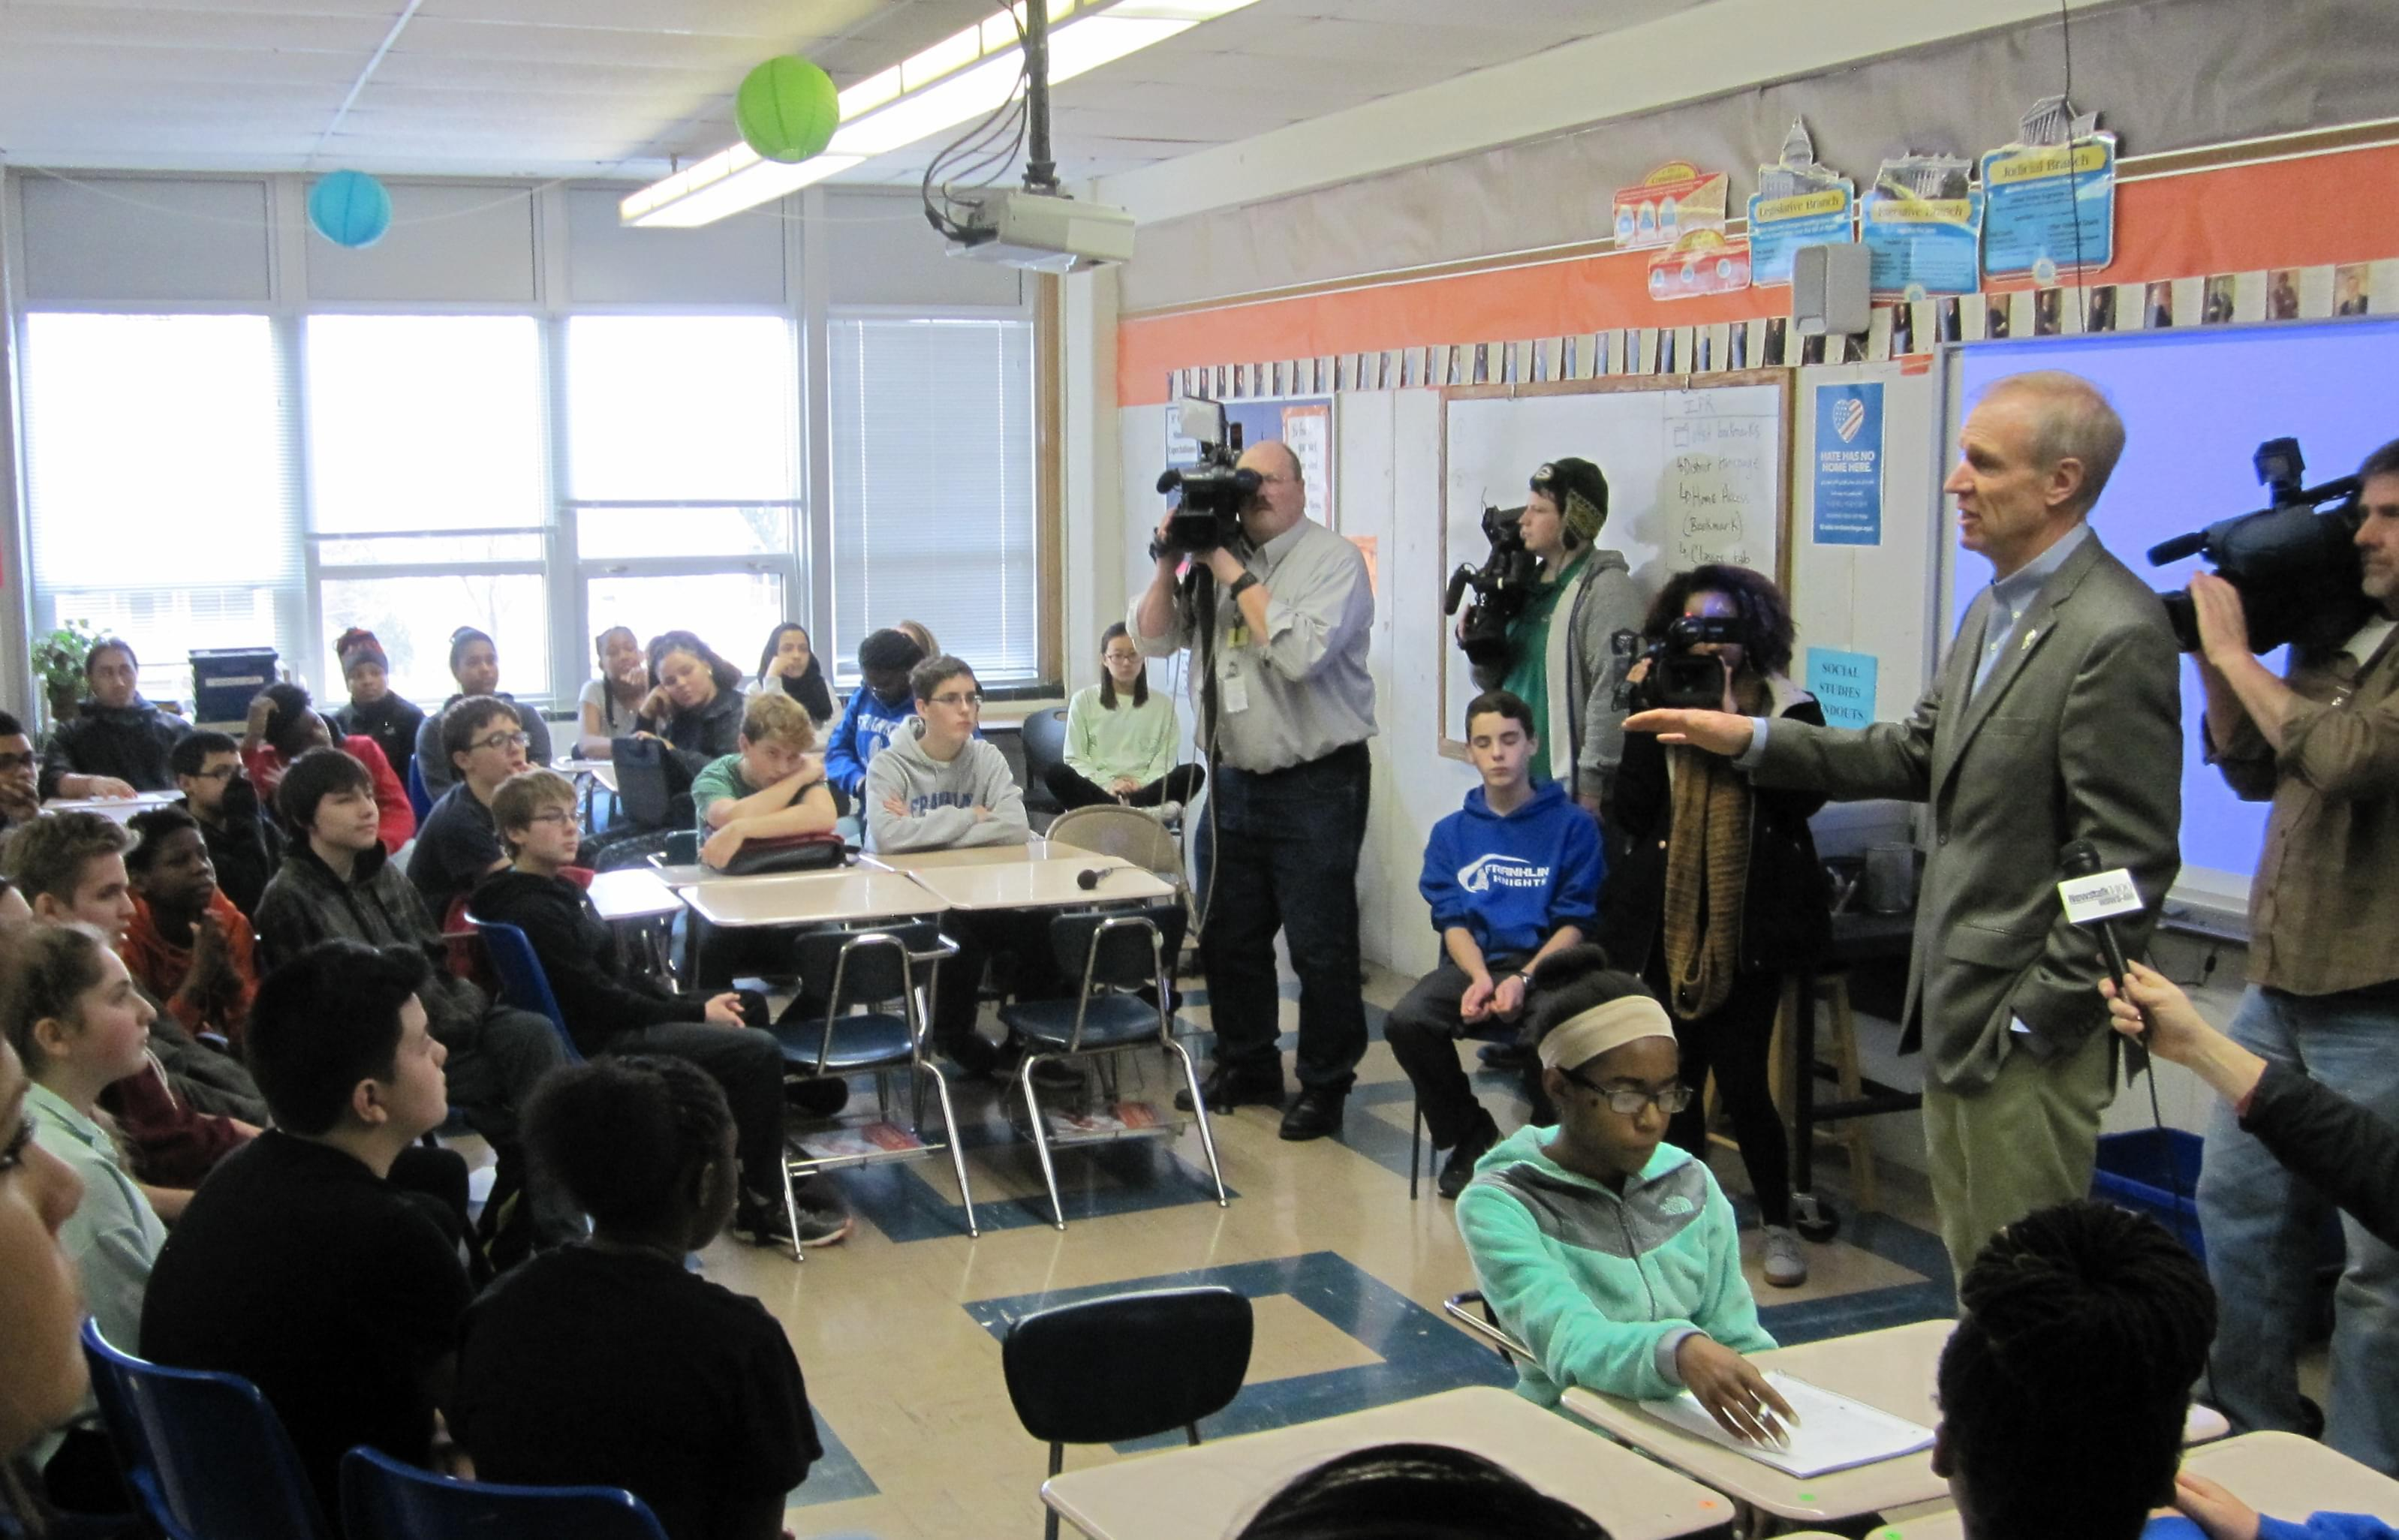 Gov. Bruce Rauner, visiting a class at Franklin Middle School in Champaign.